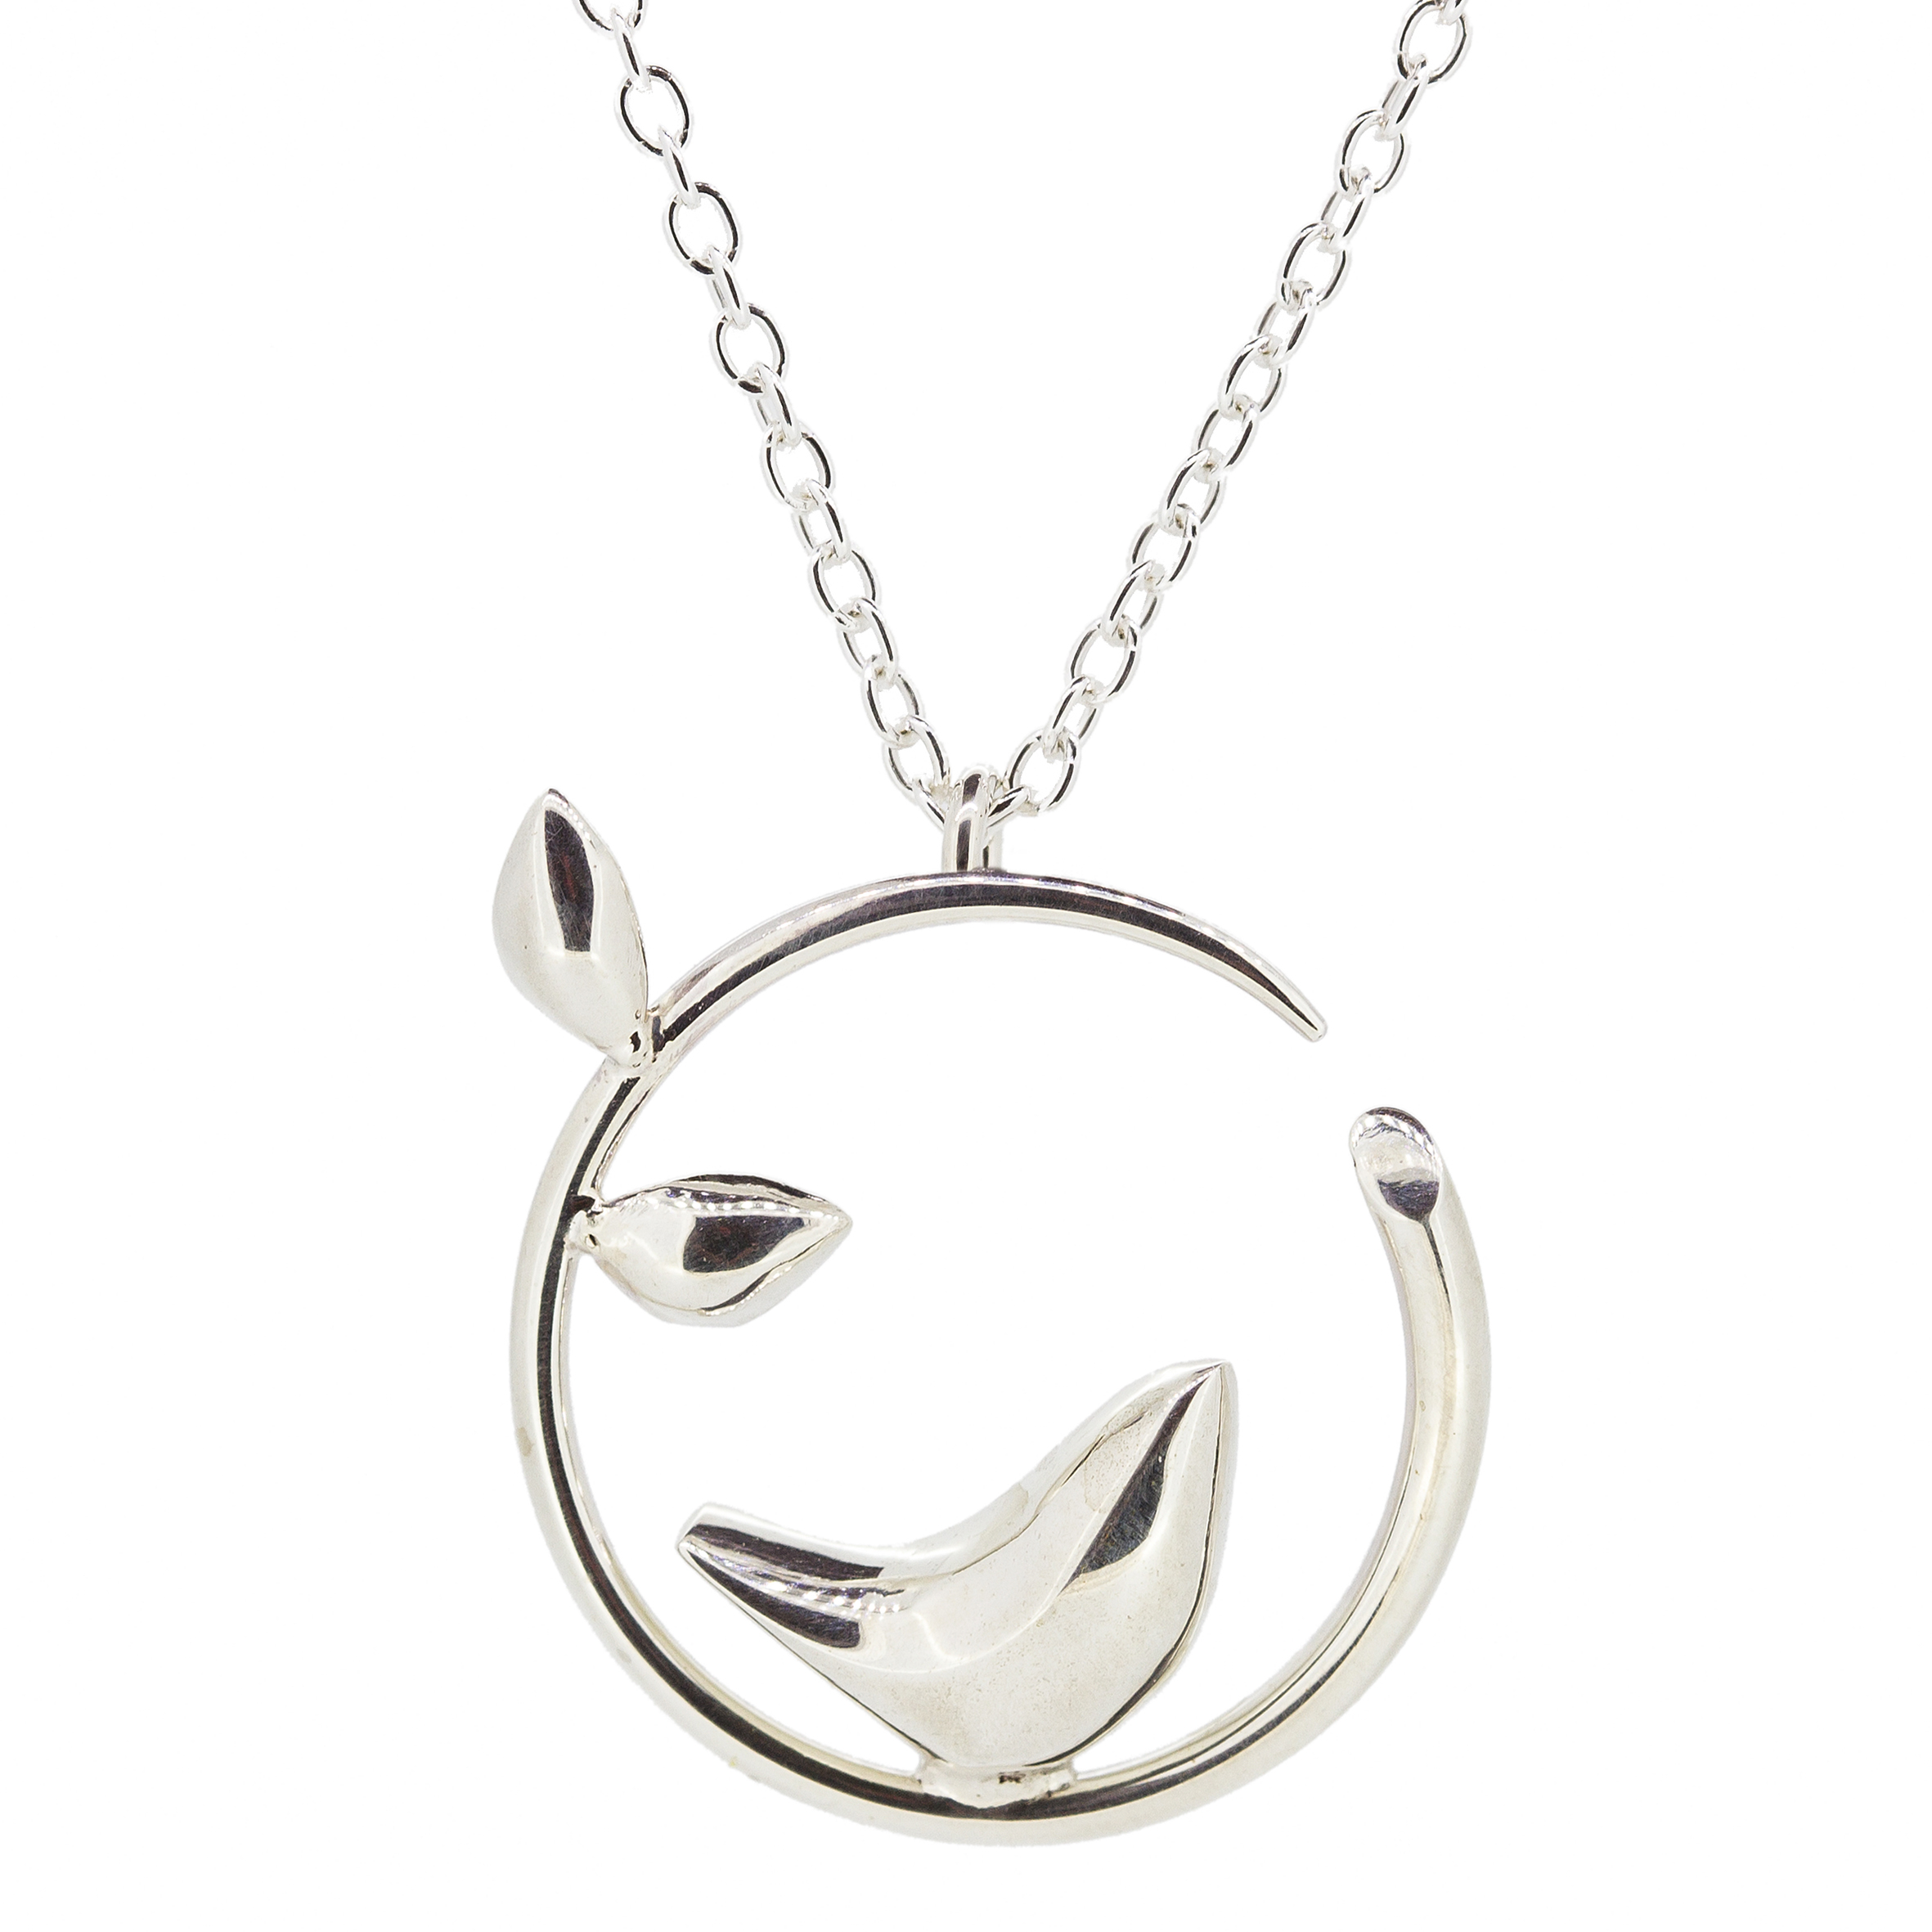 pendant tui products necklace bird draws natelle stuff